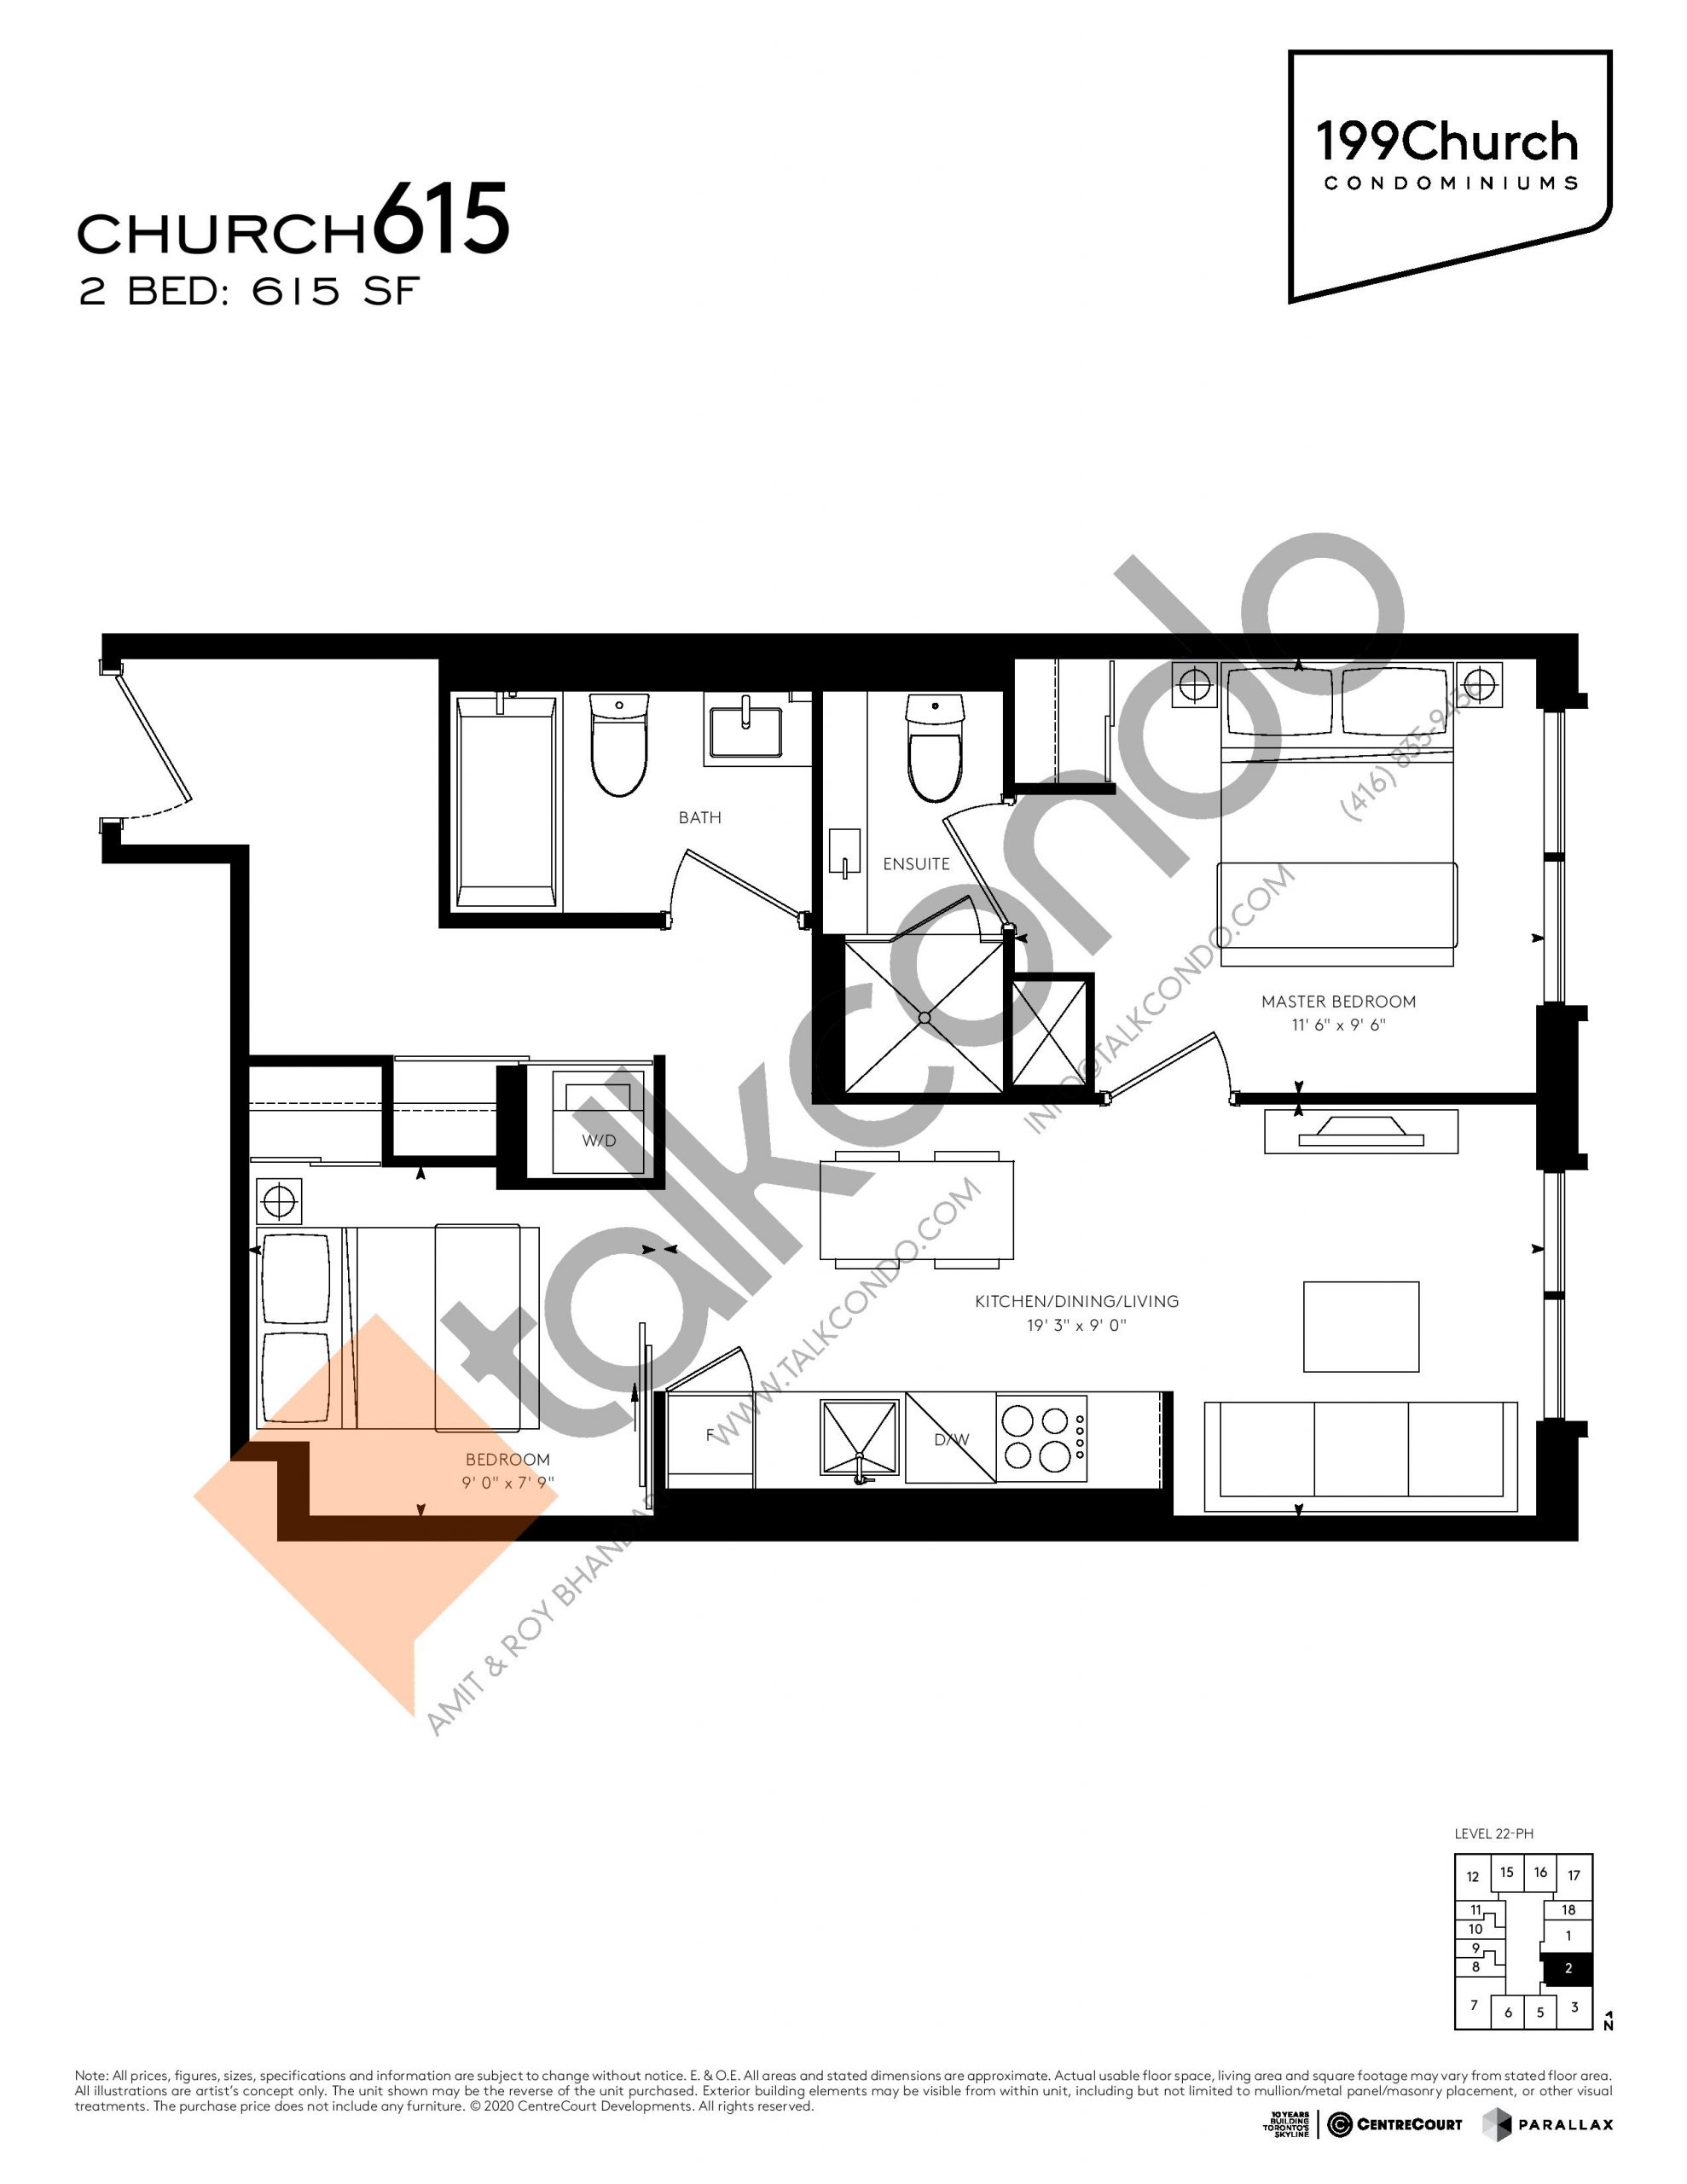 Church 615 Floor Plan at 199 Church Condos - 615 sq.ft